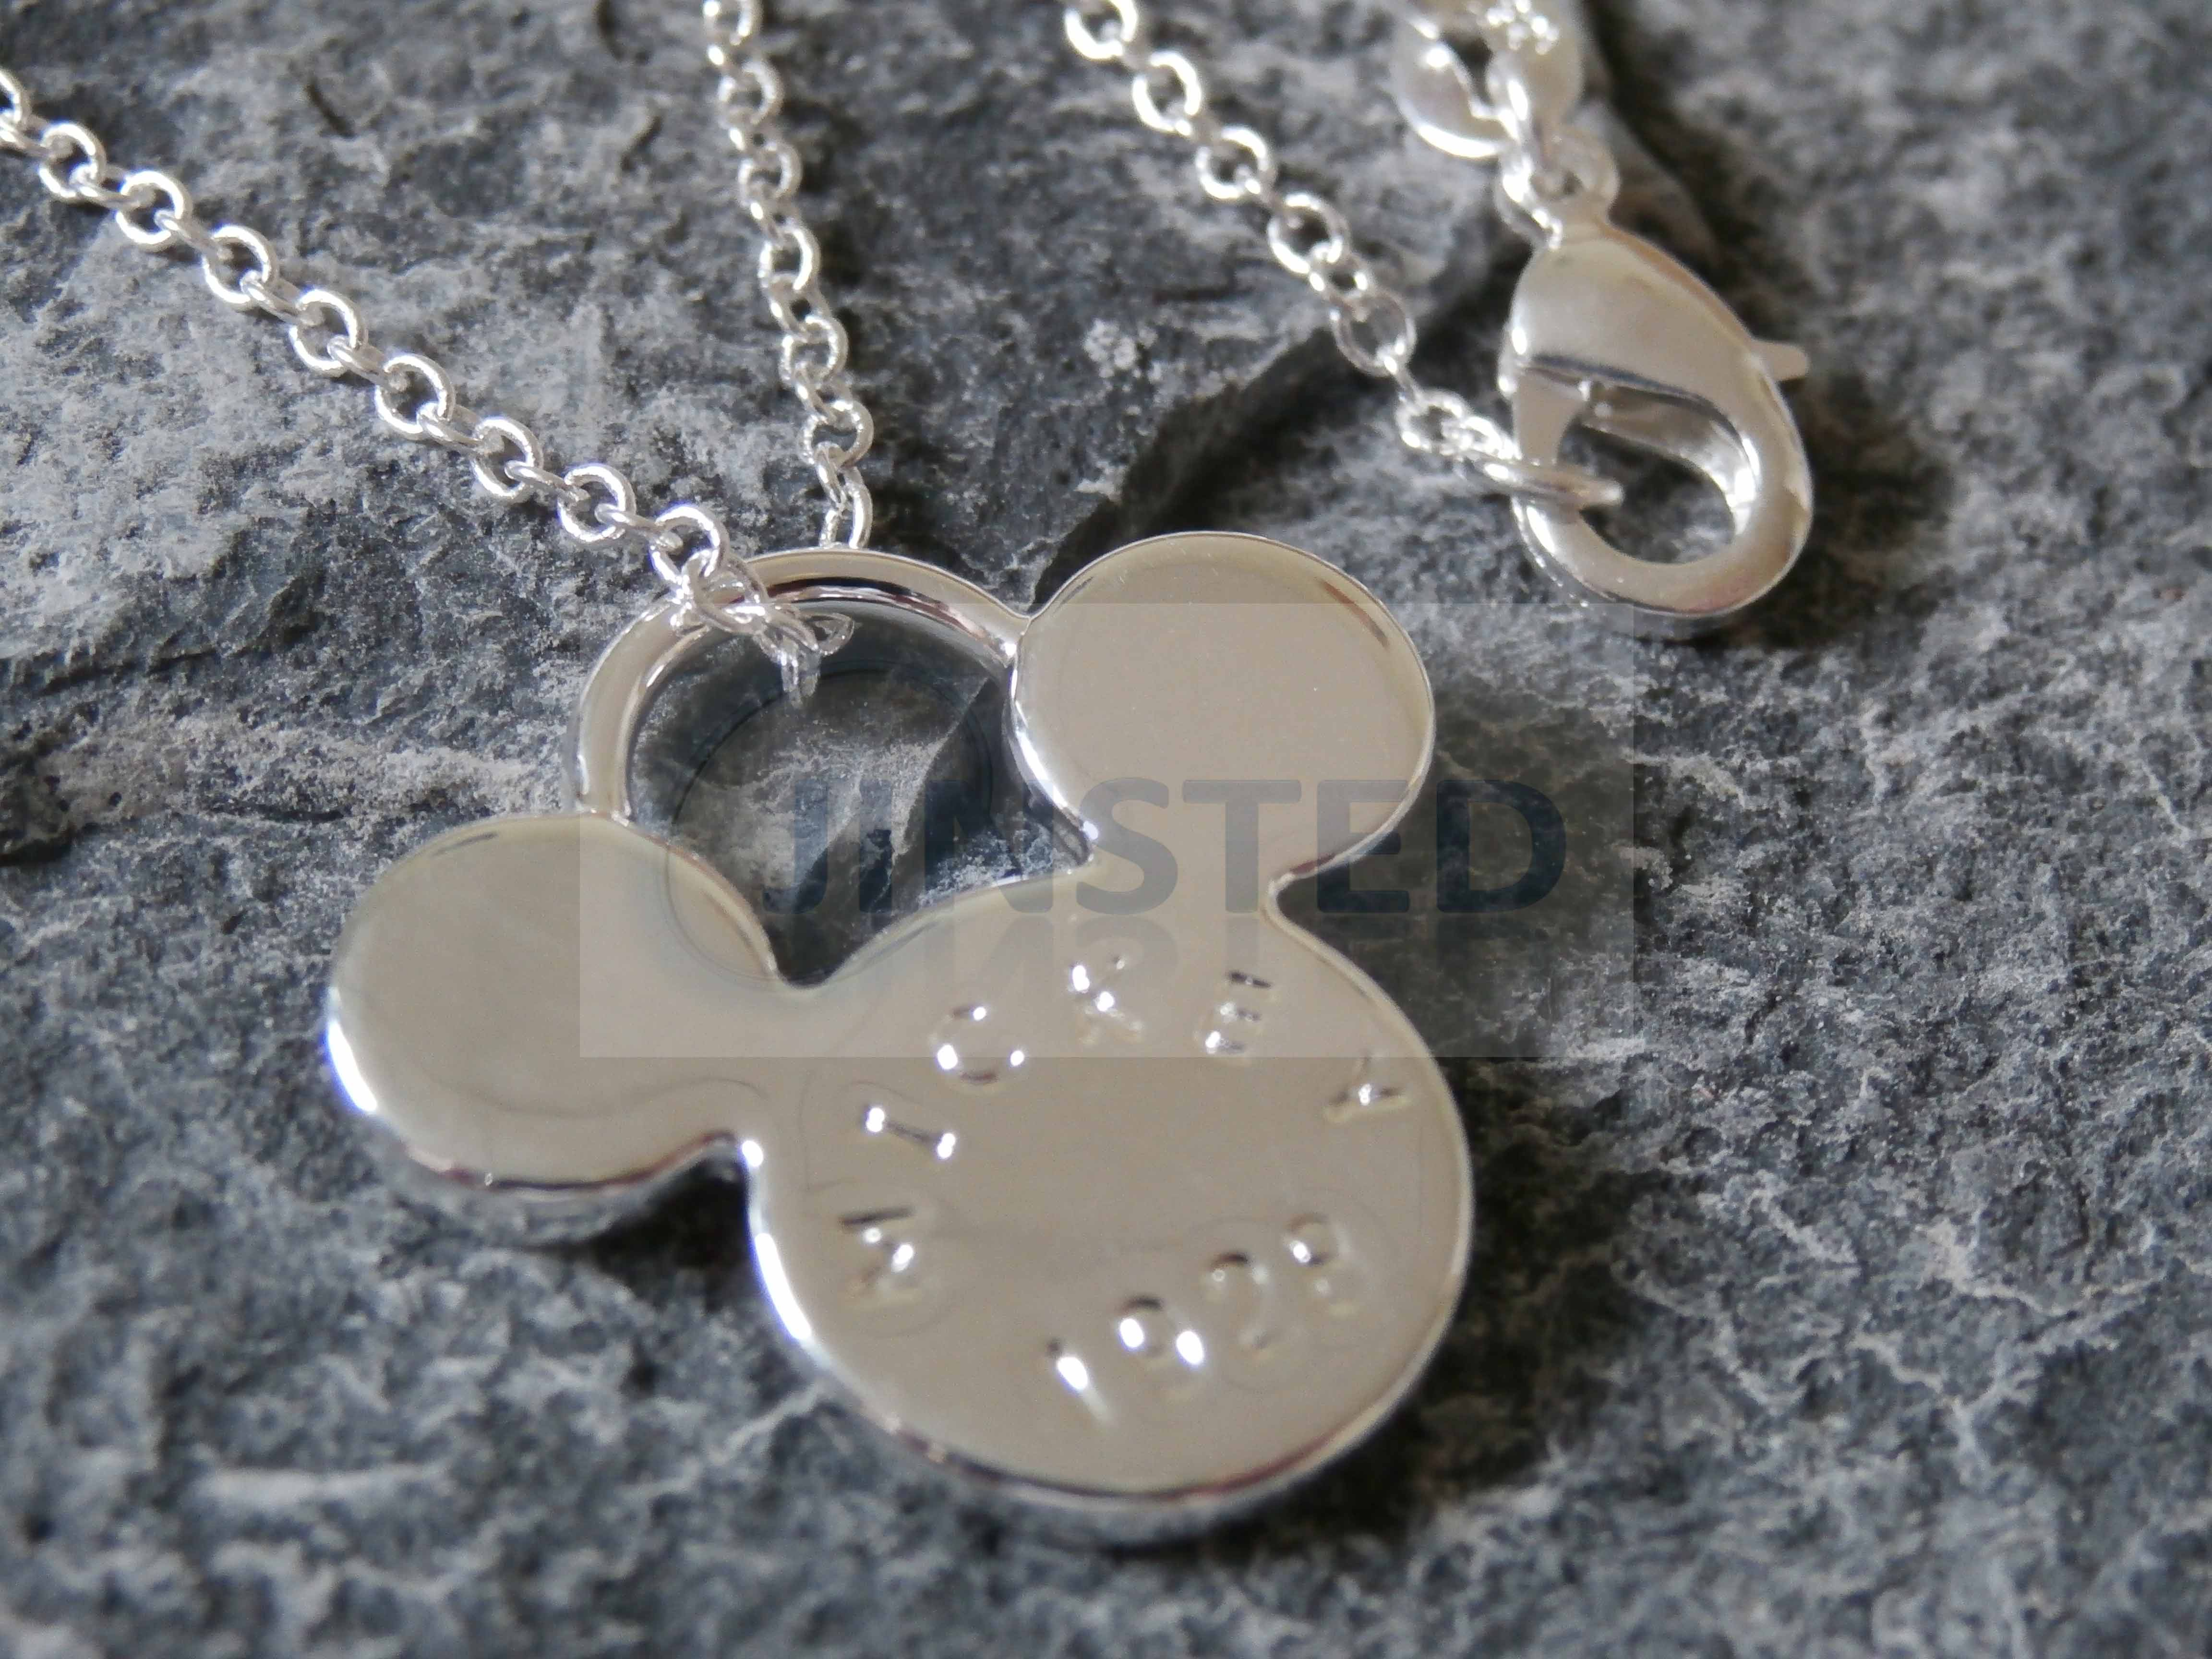 Silver necklace disneys mickey mouse pendant chain charm costume silver necklace with mickey mouse pendant aloadofball Image collections